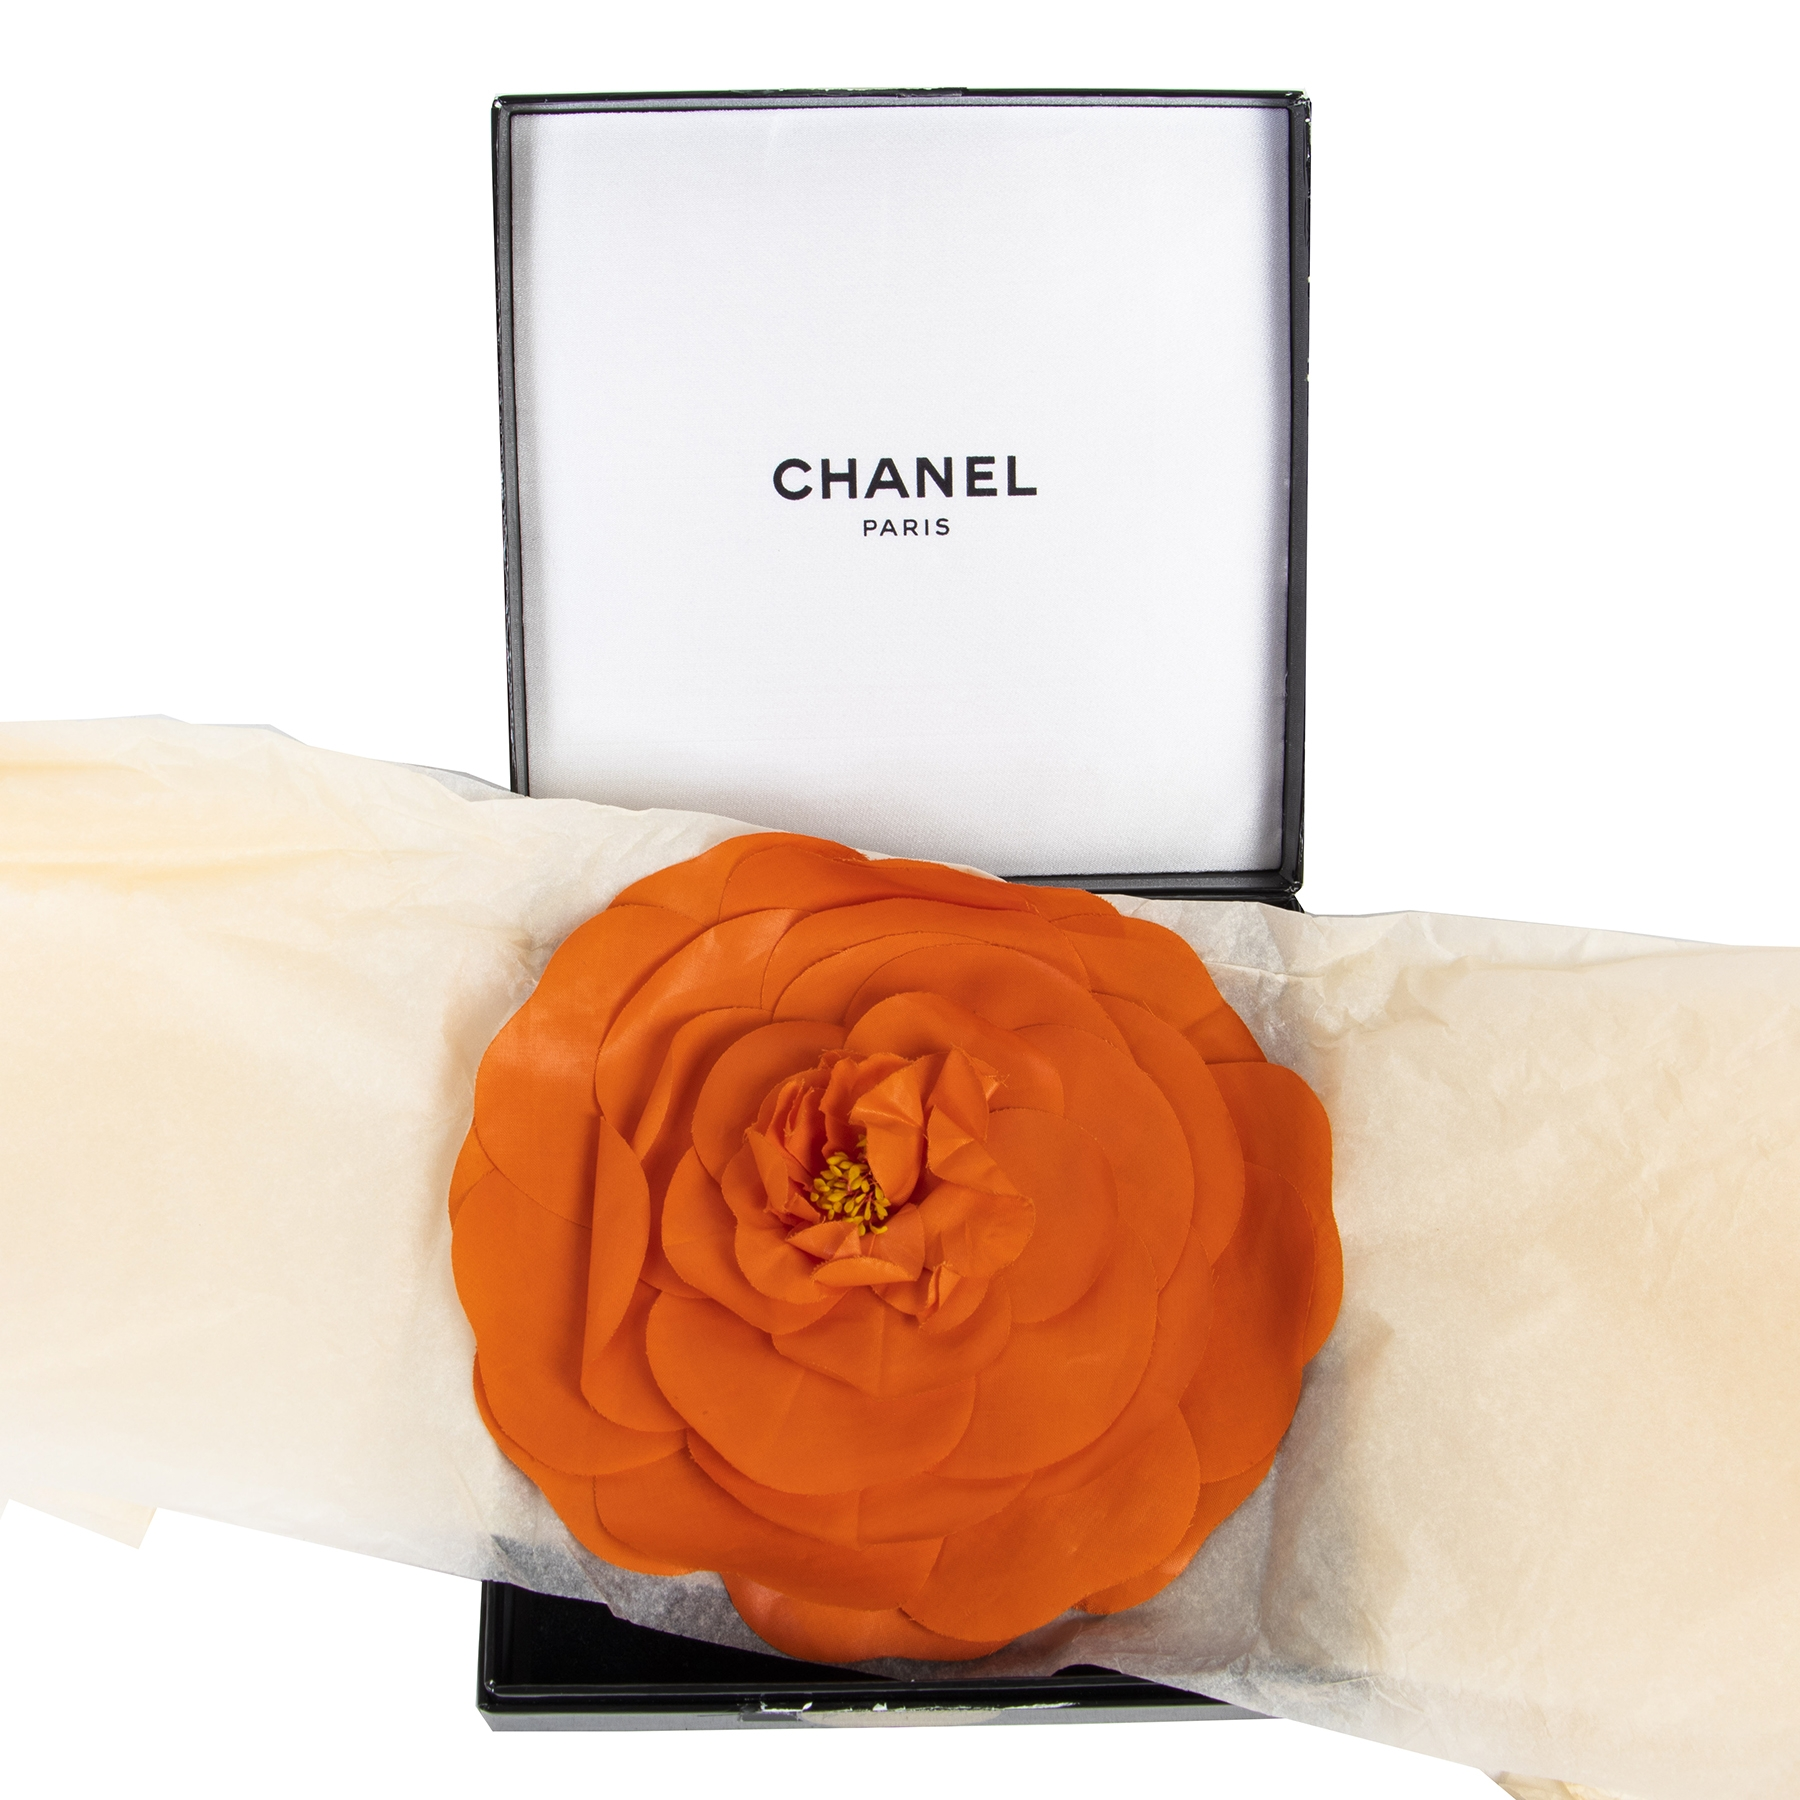 acheter en ligne seconde main Chanel Orange Camellia Flower Brooch Pin